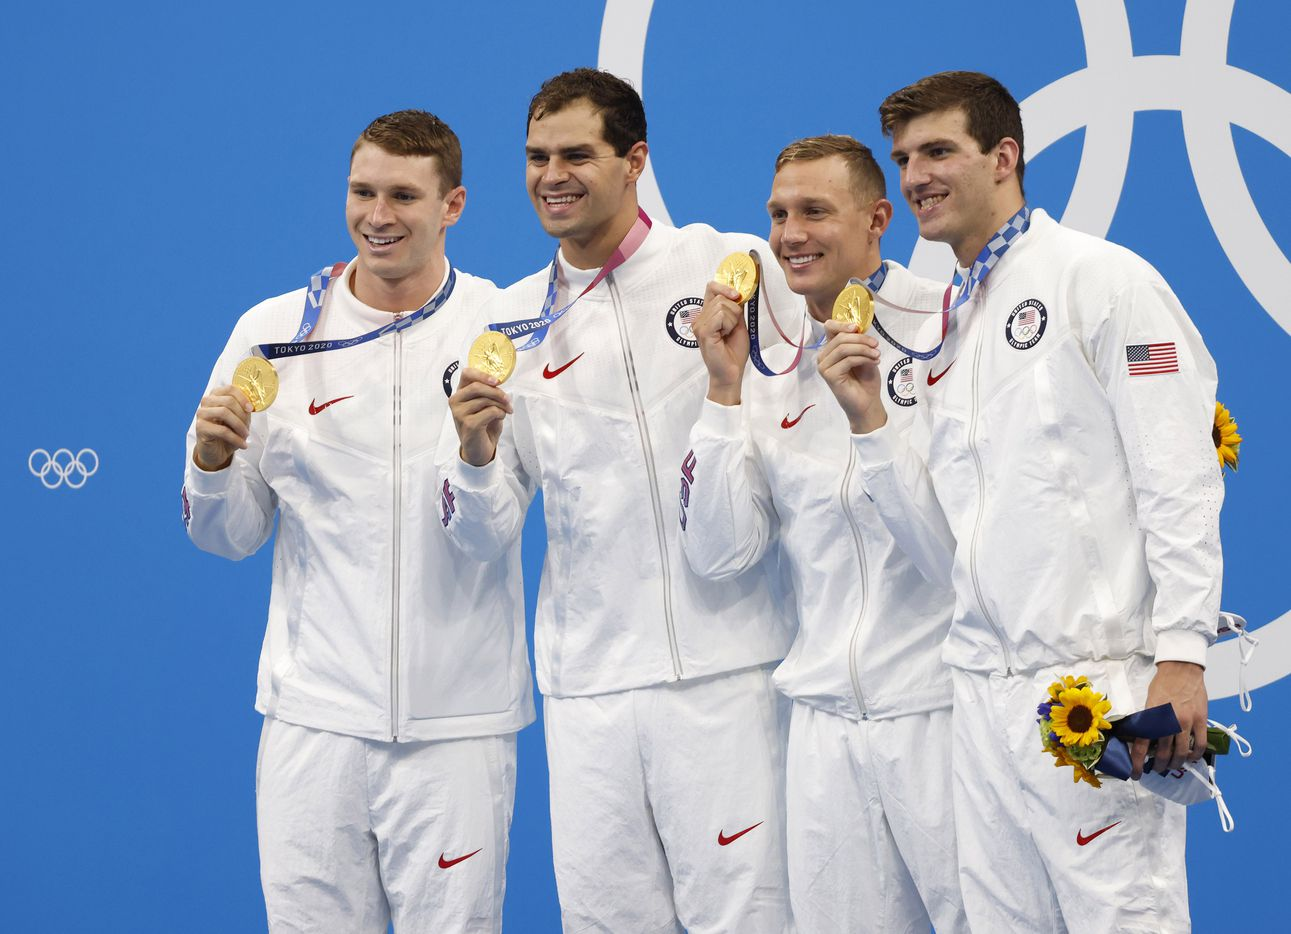 (Left to right) USA's Ryan Murphy, Michael Andrew, Caeleb Dressel, and Zach Apple pose for photos during the men's 4x100 meter medley relay medal ceremony at the postponed 2020 Tokyo Olympics at Tokyo Aquatics Centre, on Sunday, August 1, 2021, in Tokyo, Japan. USA earned a gold medal, setting a new world record with a time of 3:26.78. (Vernon Bryant/The Dallas Morning News)